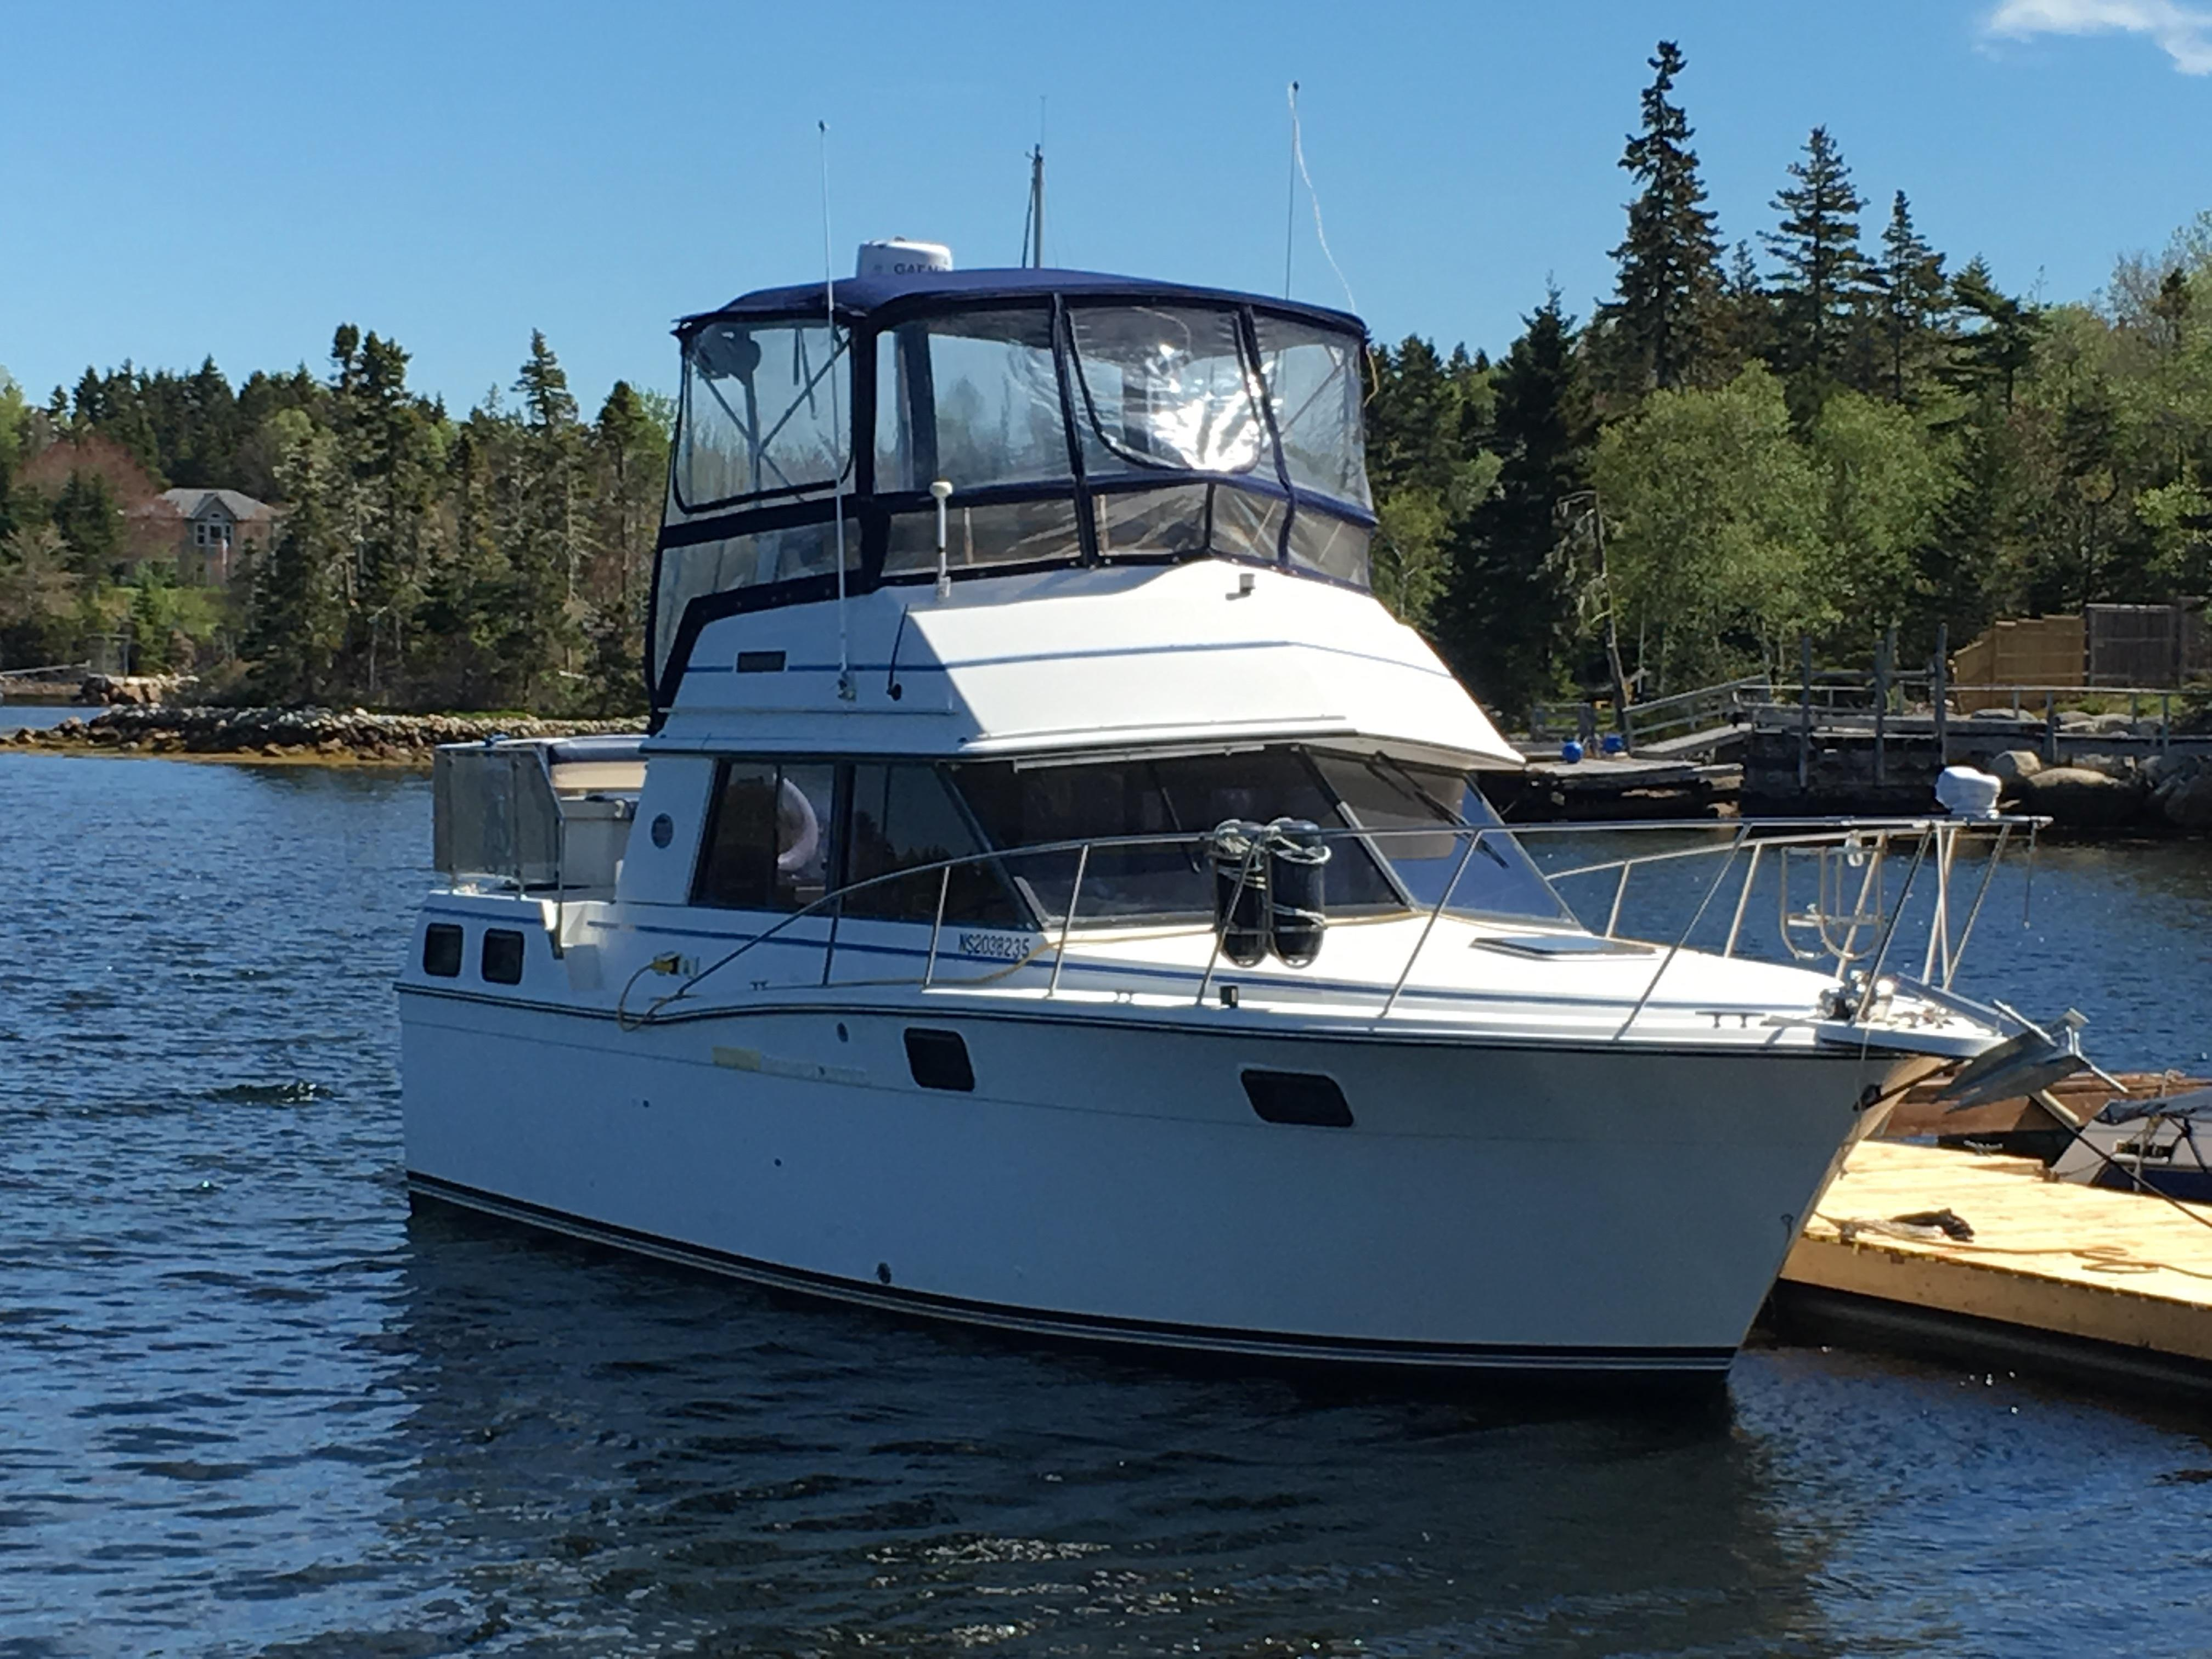 1989 CARVER YACHTS 32 Aft Cabin Power Boat For Sale - www ...